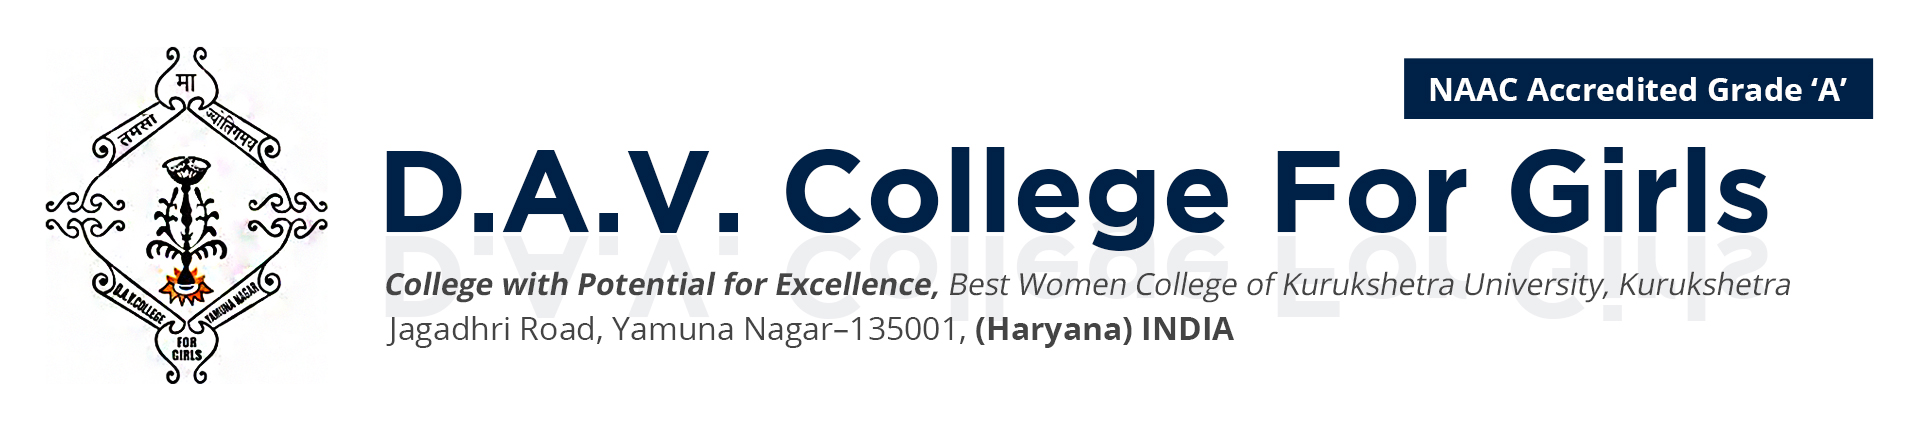 D.A.V. College for Girls